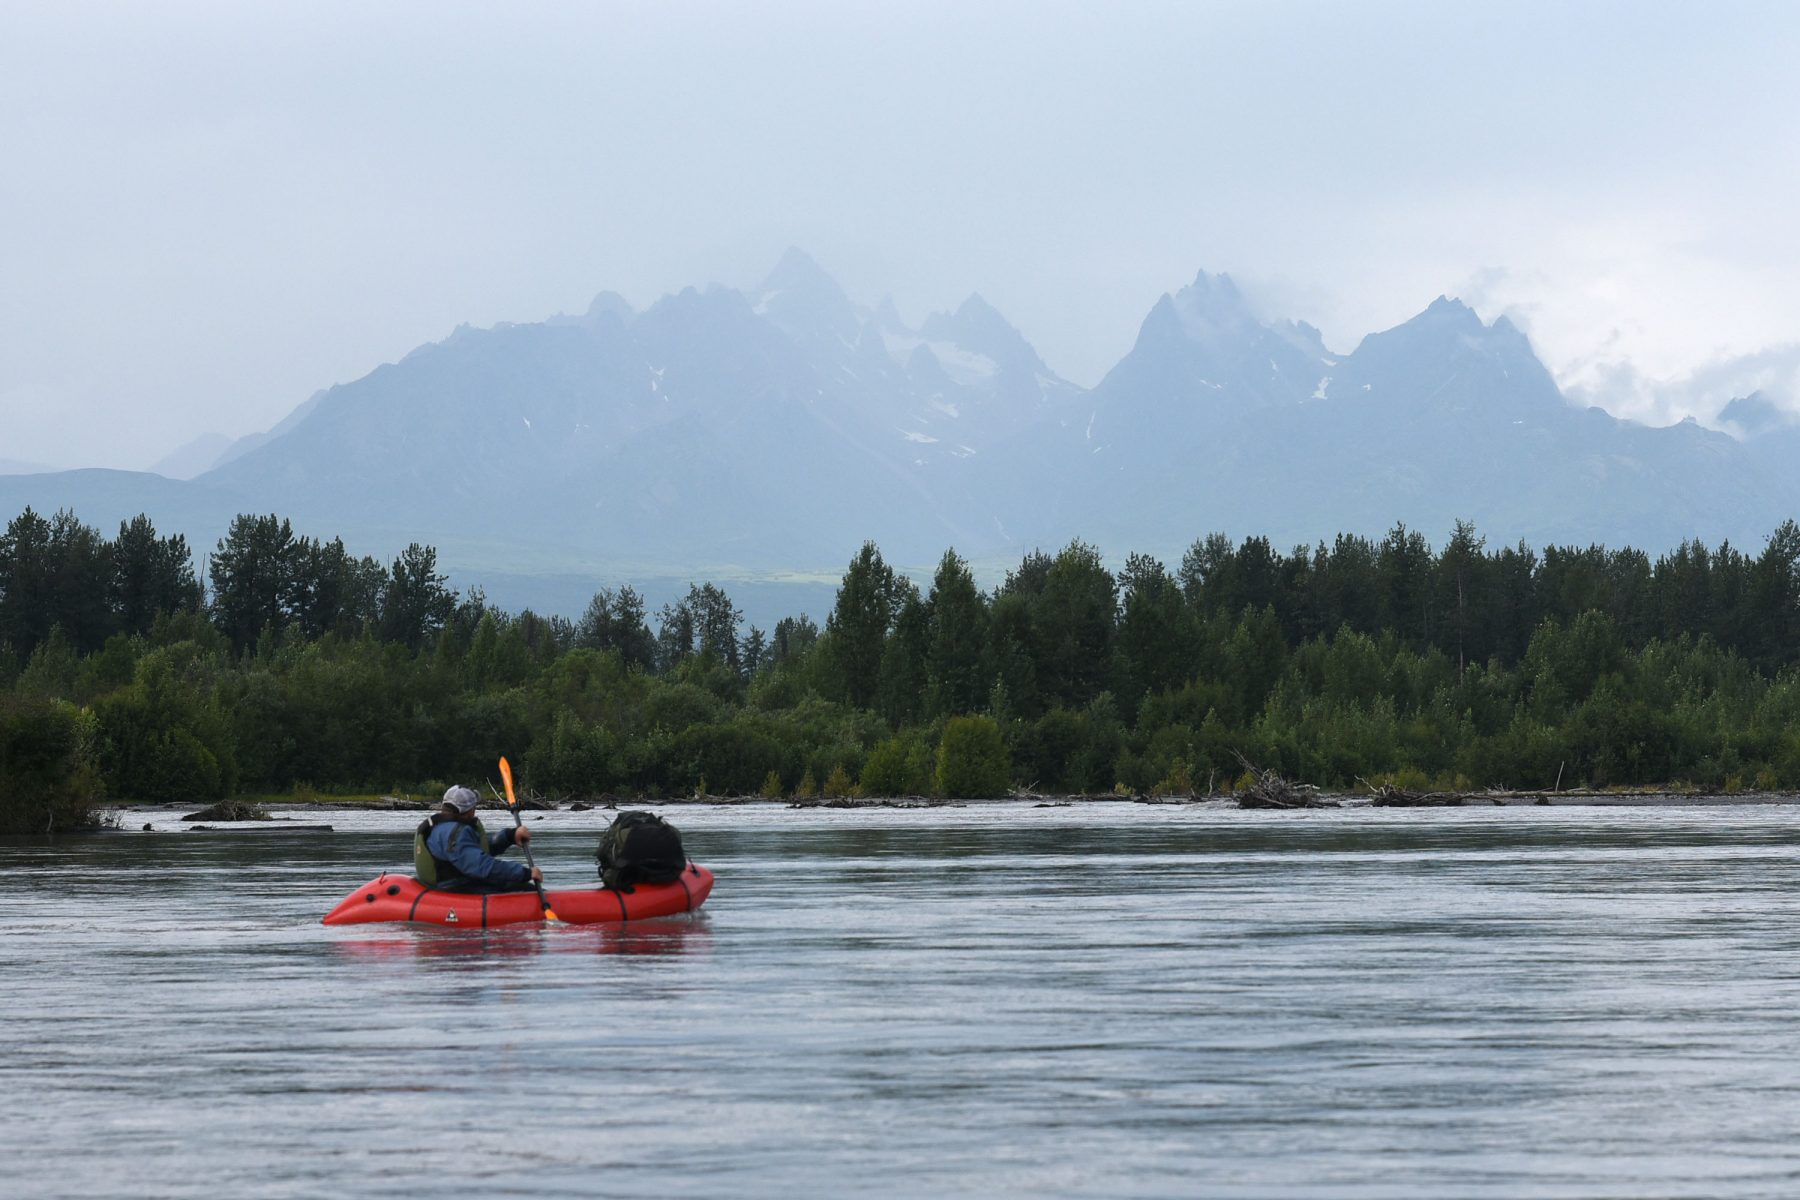 Brett Woelber packrafting past the confluence of the Tokositna and Ruth rivers